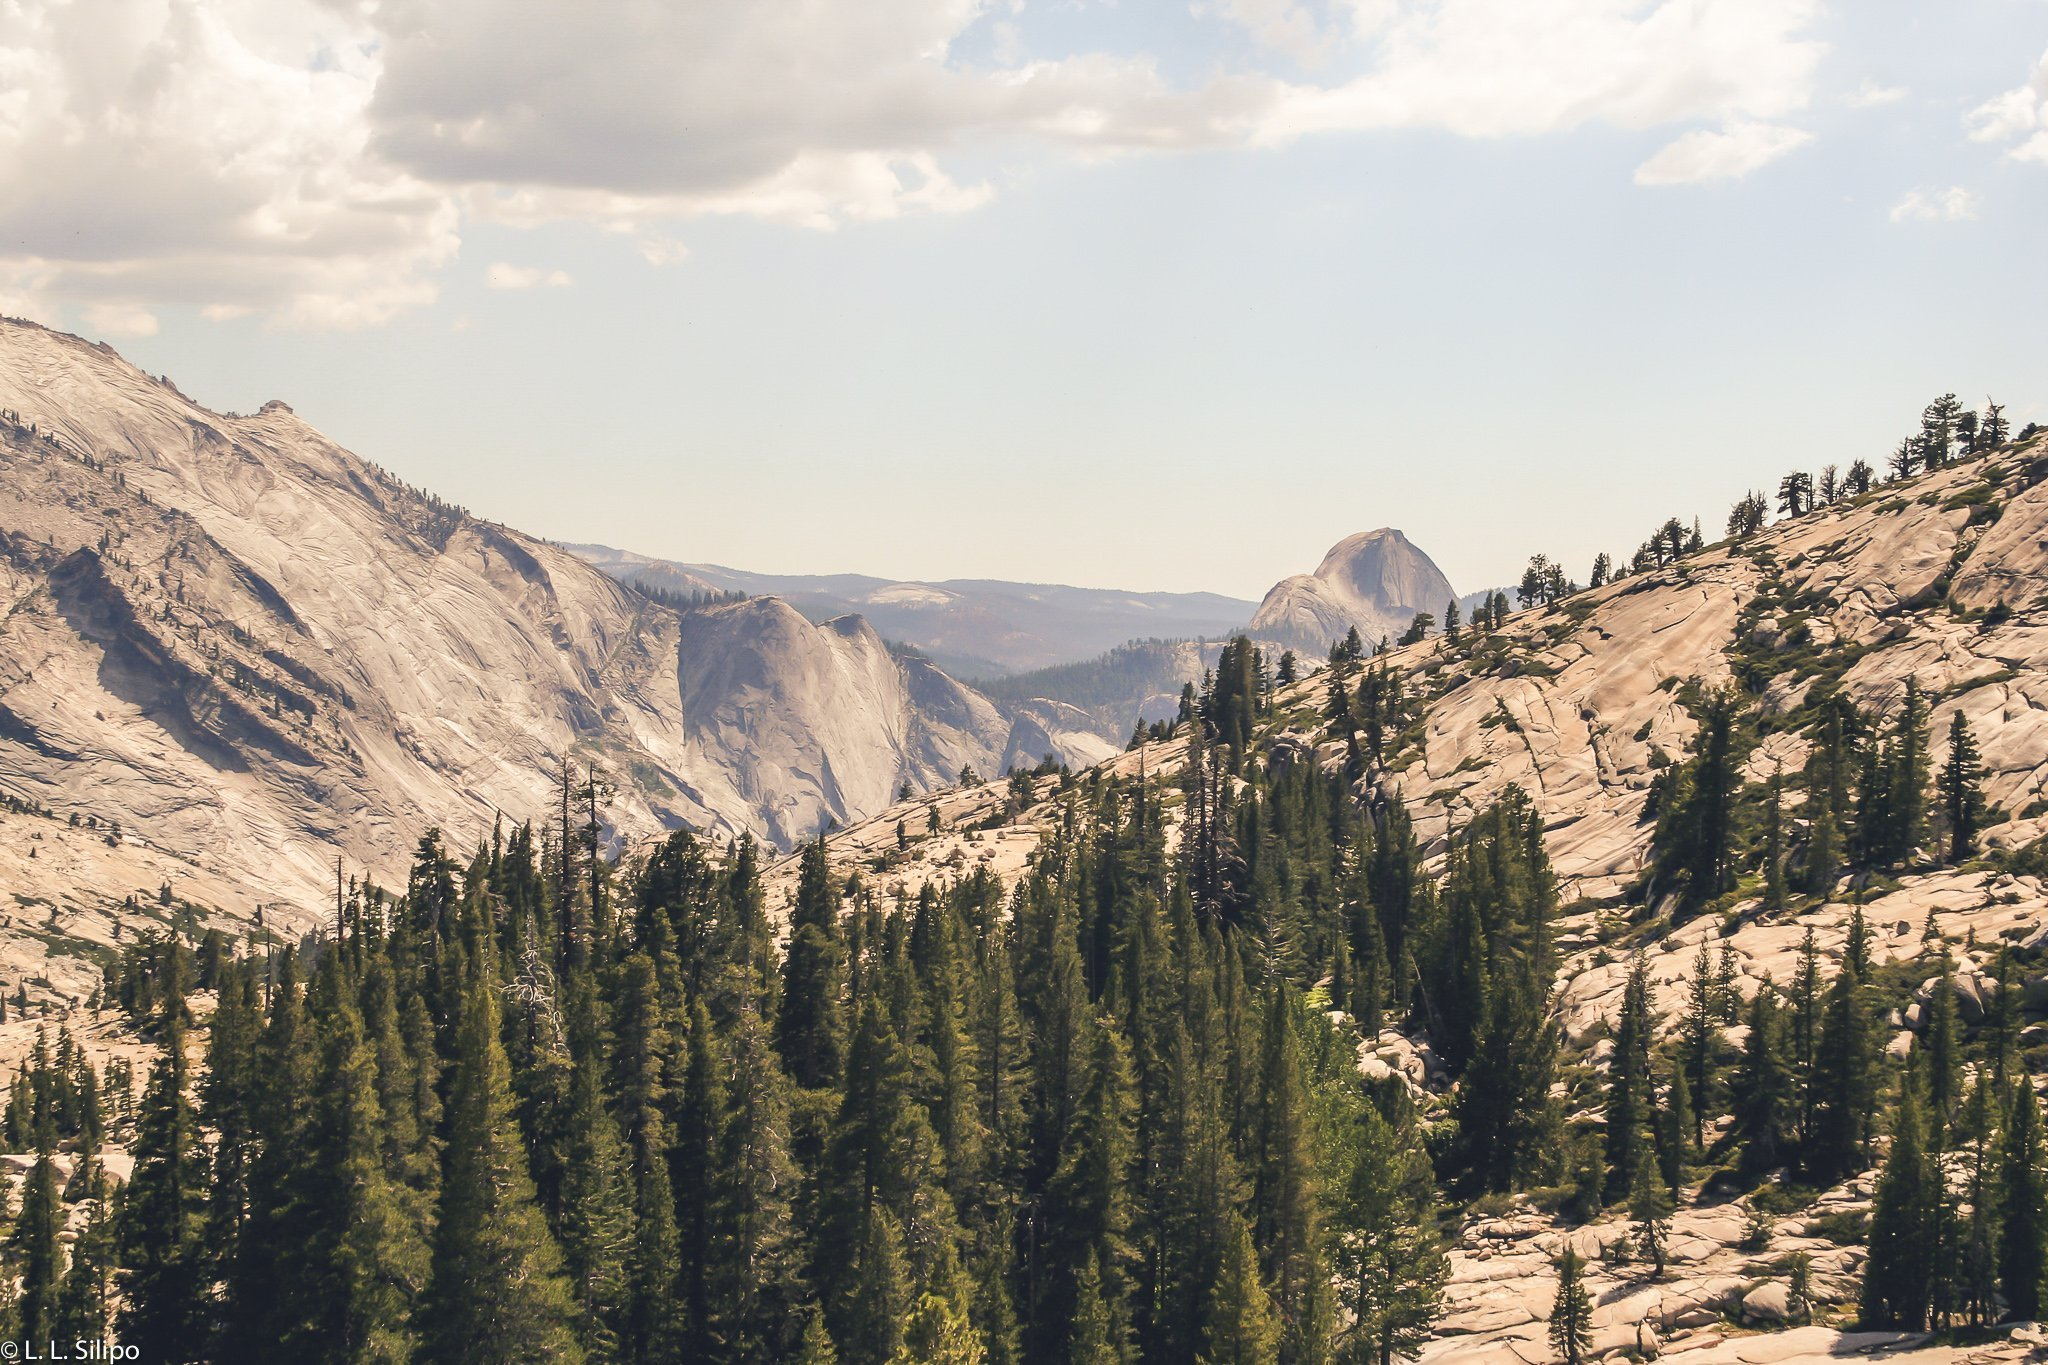 California, Yosemite, america, beautiful, capitan, conifer, el capitan, landmark, landscape, mountain, national, nature, outdoors, park, rock, scenic, travel, valley, wood, yosemite national park